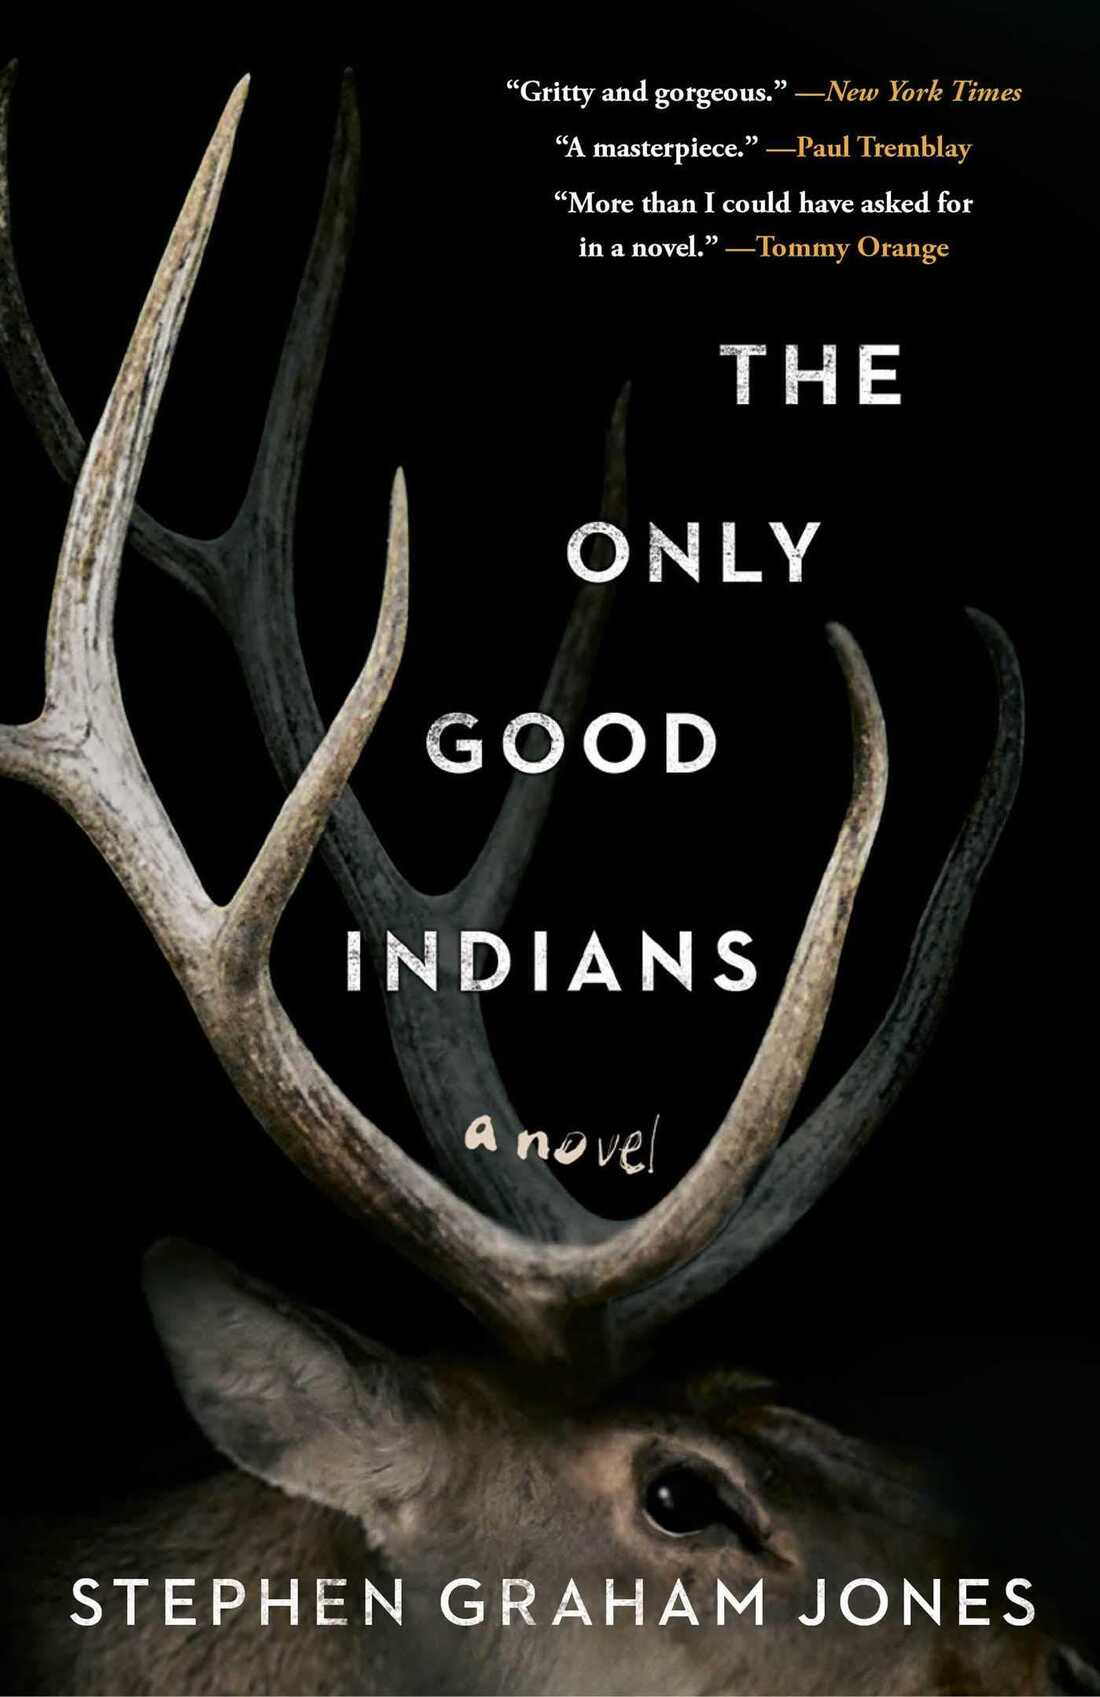 The Only Good Indians, by Stephen Graham Jones